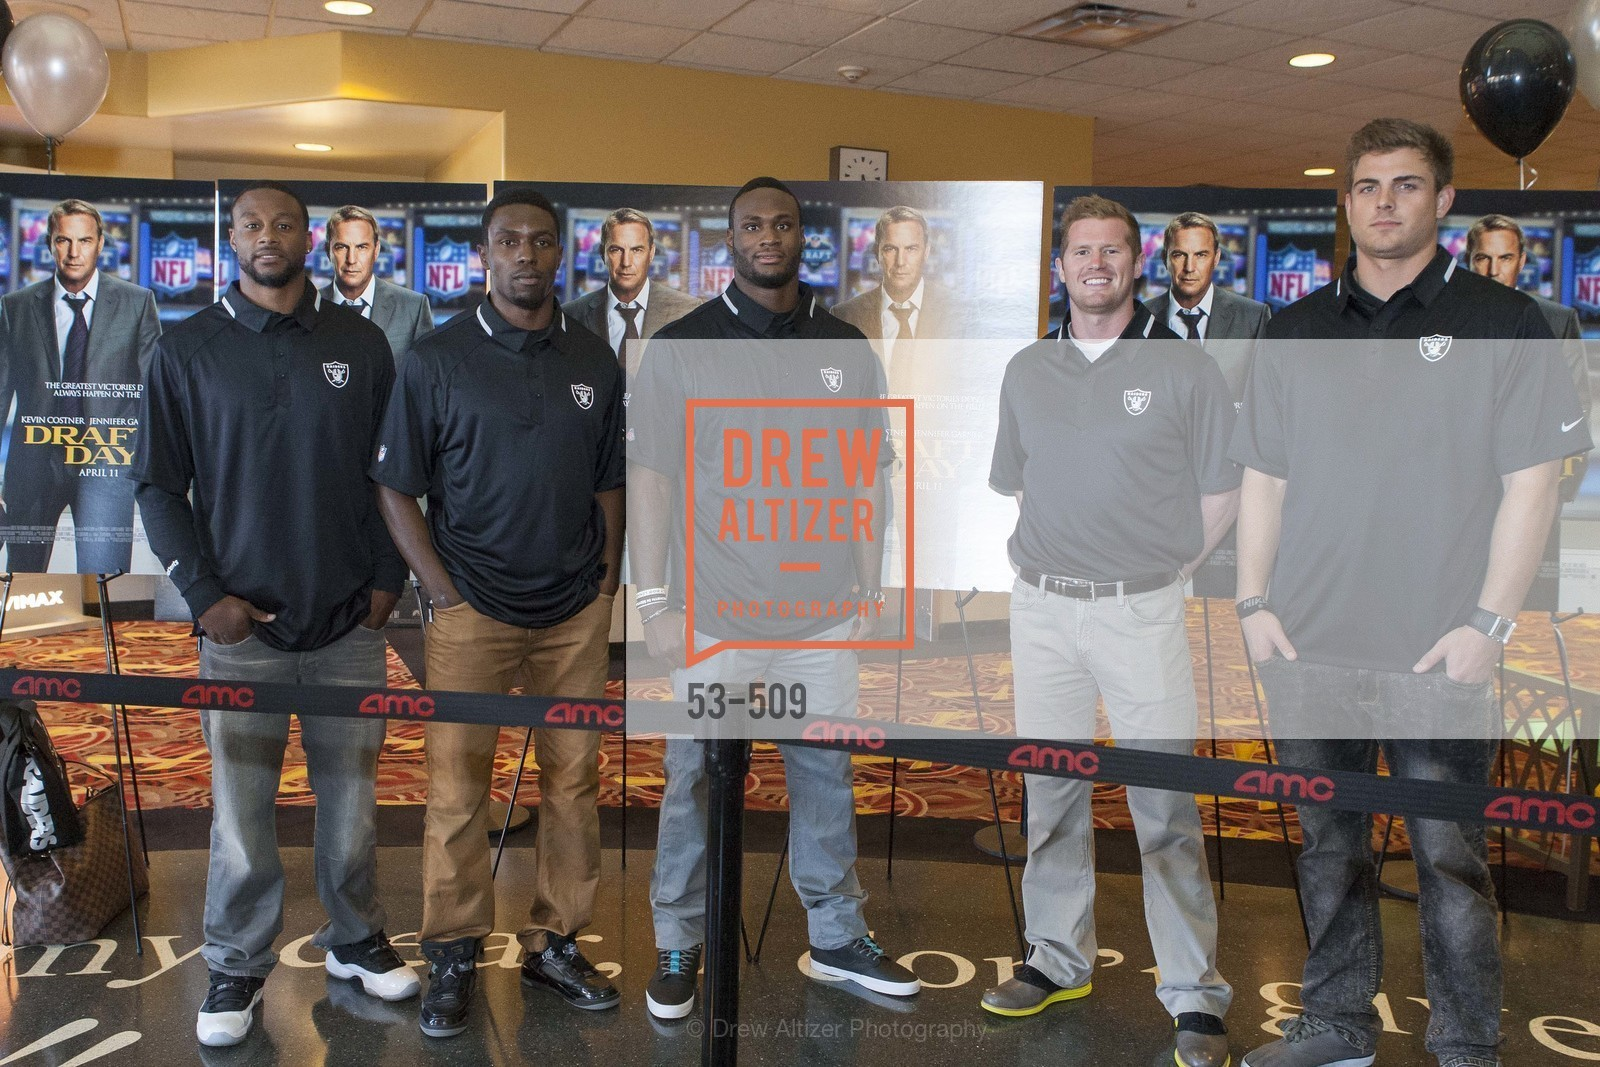 Taiwan Jones, Chimdi Chekwa, Latavius Murray, Matthew McGloin, Nick Kasa, SUMMIT ENTERTAINMENT Presents a Special Screening of DRAFT DAY with the Oakland Raiders, US. AMC 16 Shellmound, Emeryville, Ca, April 9th, 2014,Drew Altizer, Drew Altizer Photography, full-service agency, private events, San Francisco photographer, photographer california